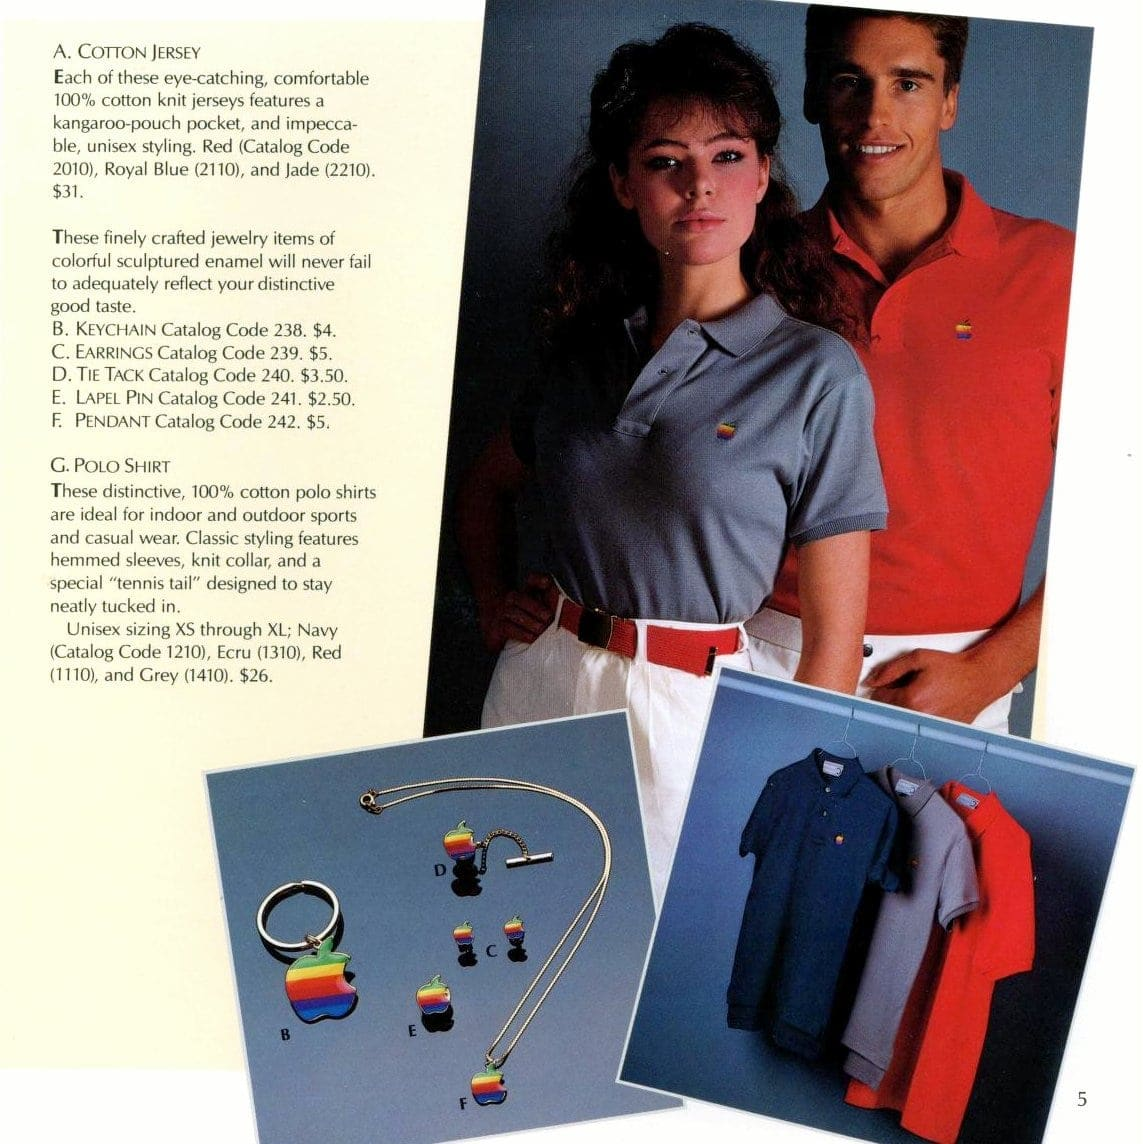 Polo shirts and jewelry